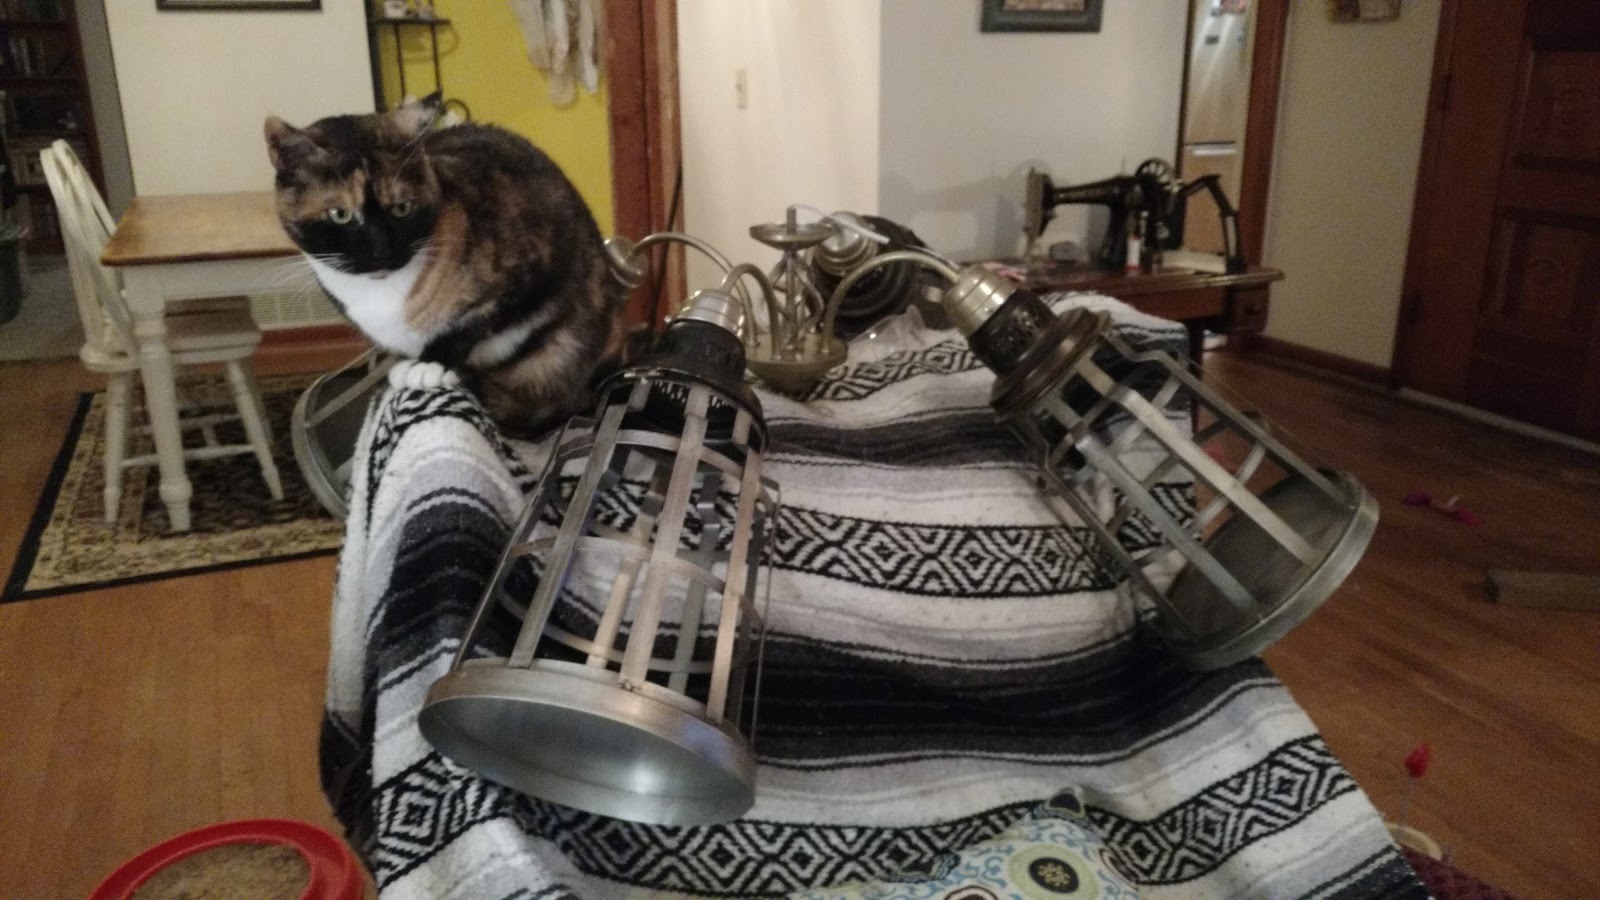 Missys homemaking adventures ceiling fan makeover he is also building a steam punk themed bookshelf and matching cat tree for his office it will be made from wood and pipes i have to make the cat beds of mozeypictures Choice Image